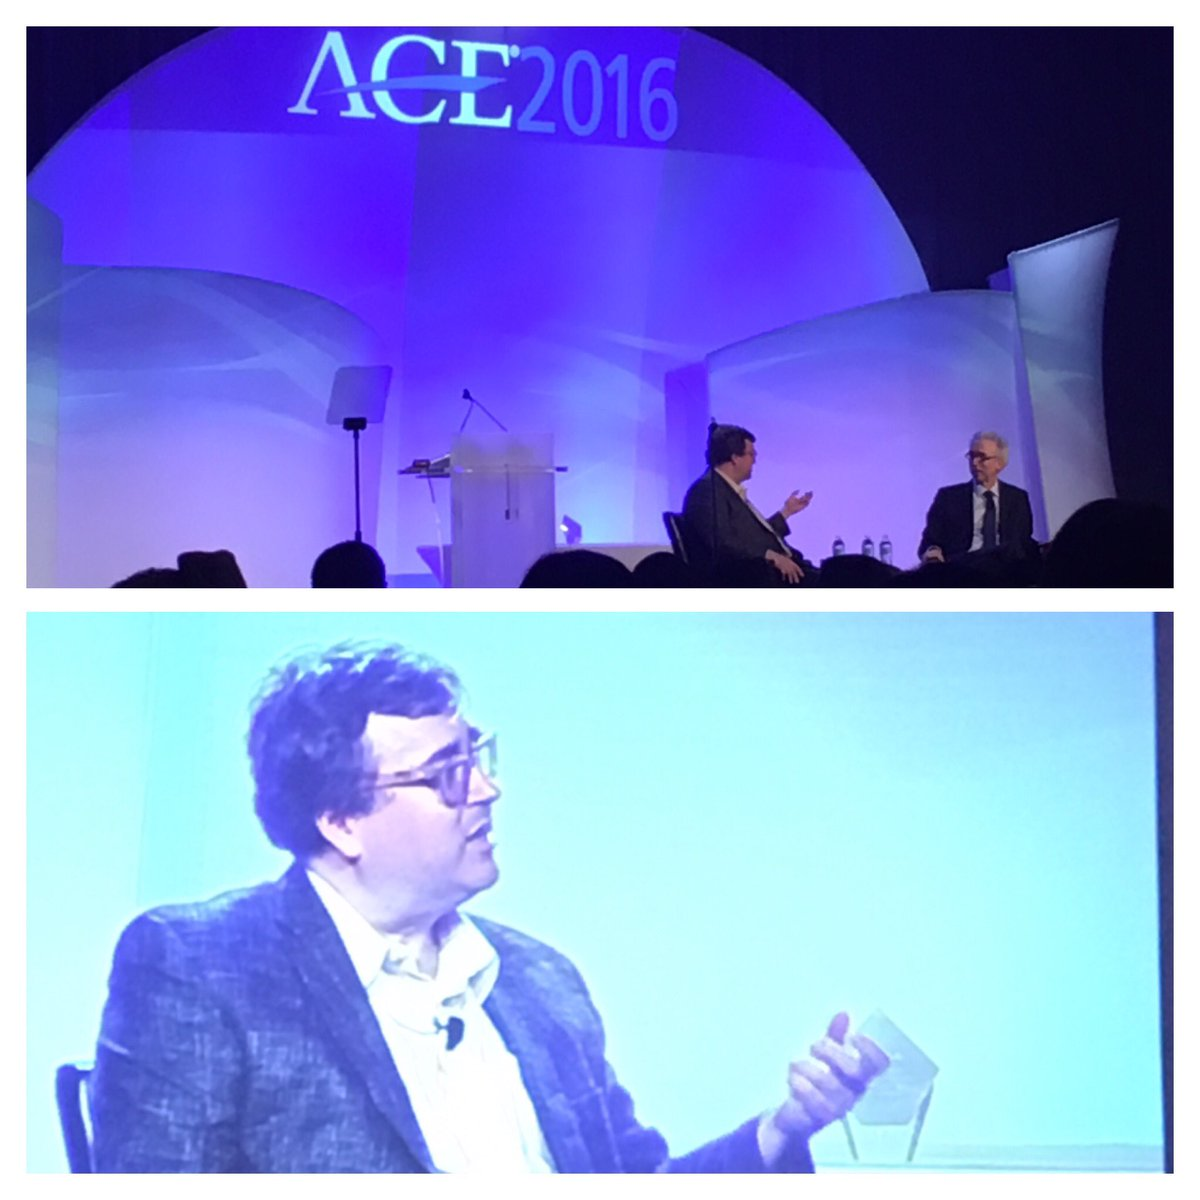 We should expect to see a revolution in education where people network to learn new skills. @reidhoffman #ACEMeetSF https://t.co/6t7JMIsCTW